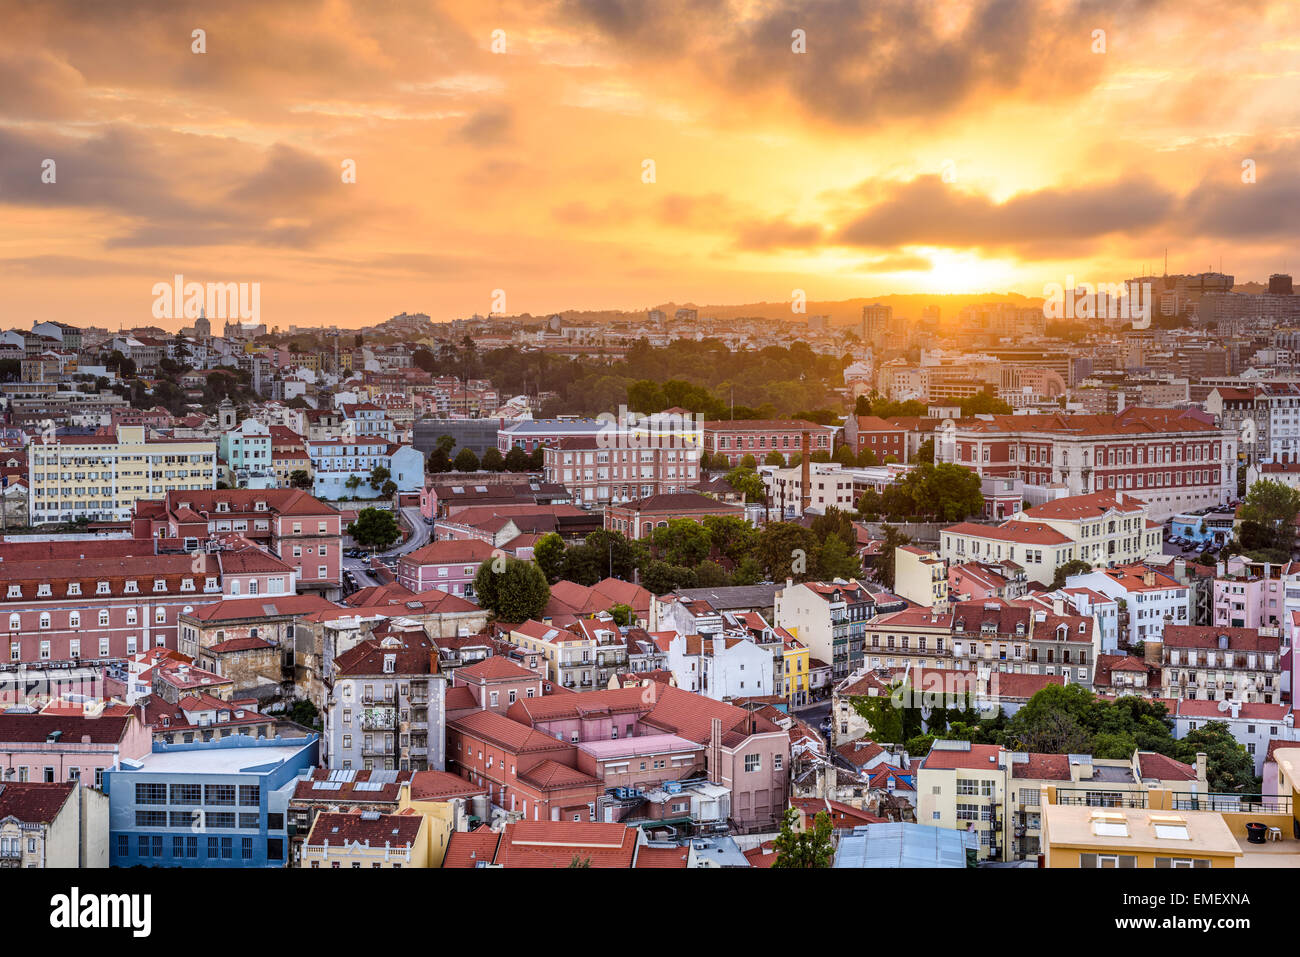 Lisbon, Portugal cityscape during sunset. - Stock Image